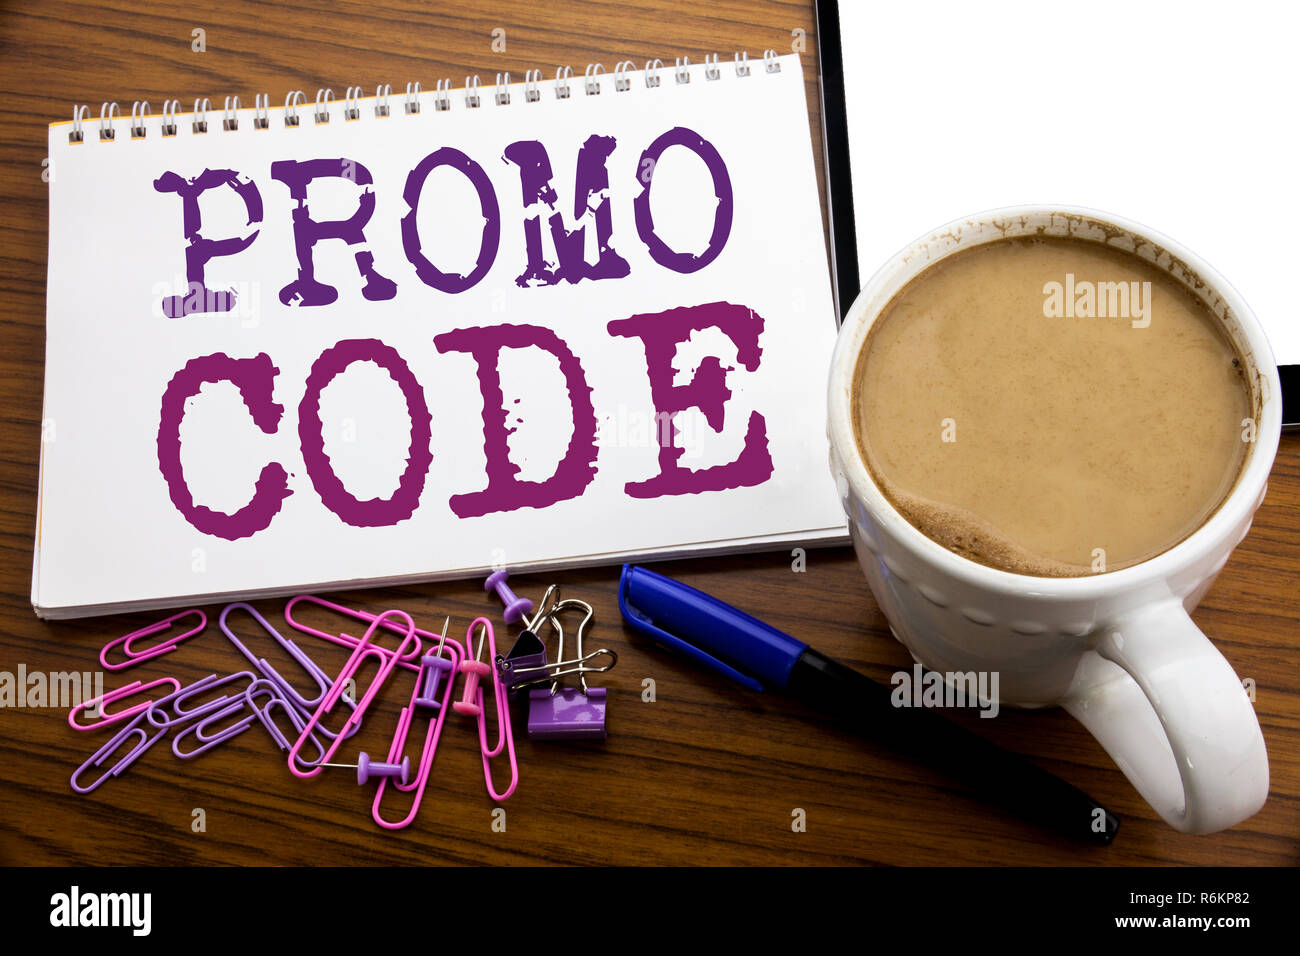 Hand writing text caption inspiration showing Promo Code  Business